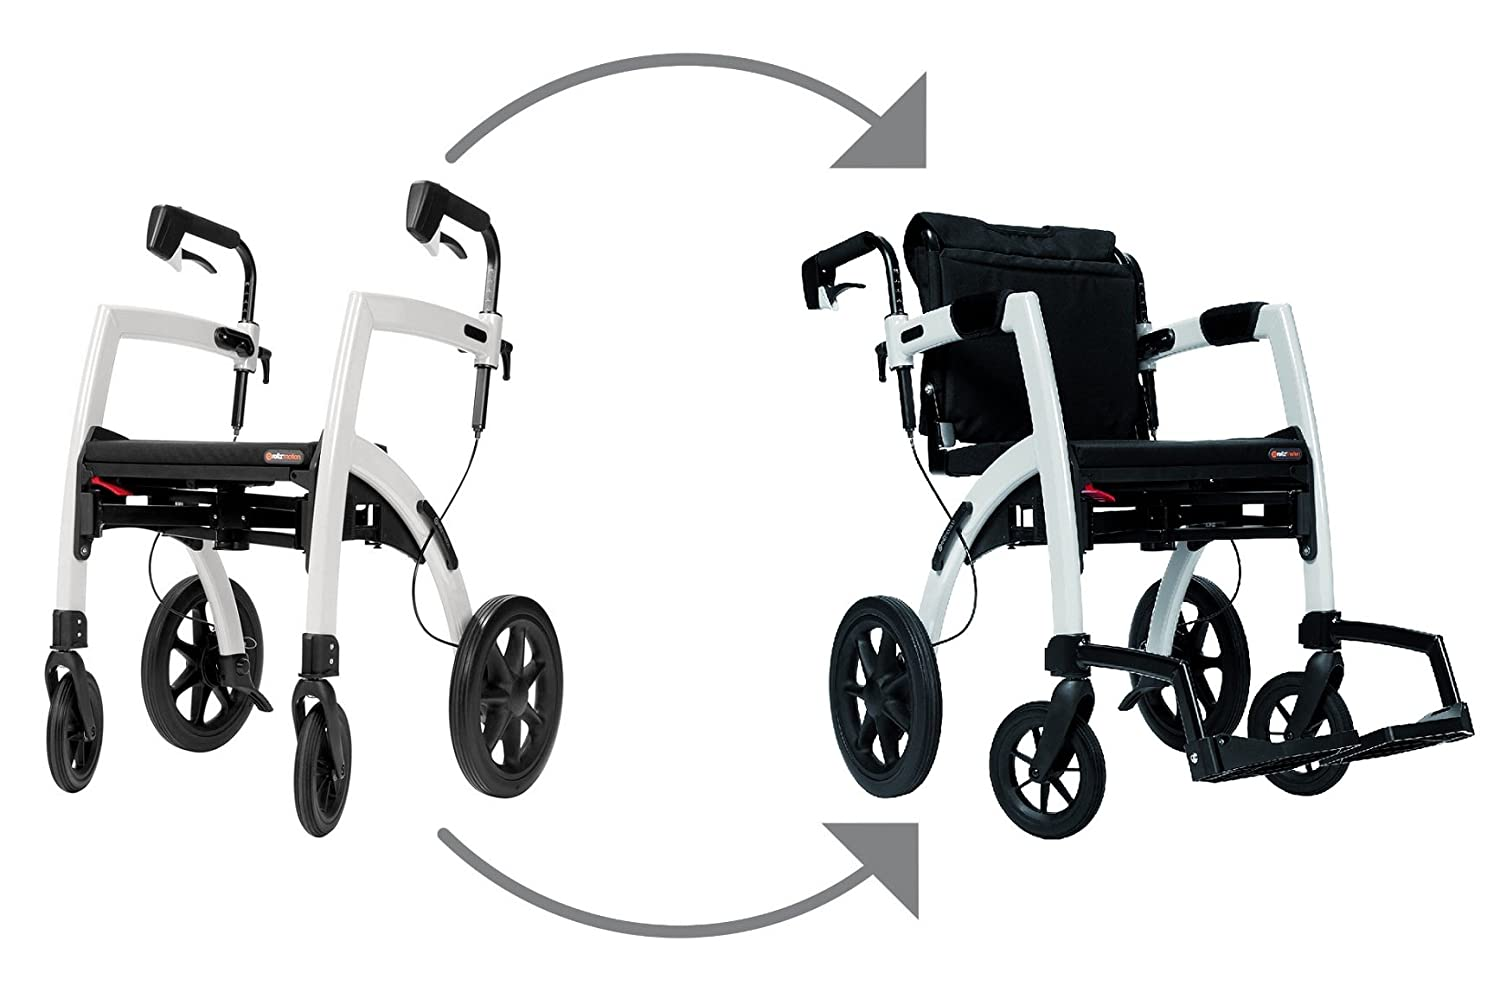 Amazon.com Rollz Motion 2-n-1 Rollator Transport Chair (Cool Gray) Health u0026 Personal Care  sc 1 st  Amazon.com & Amazon.com: Rollz Motion 2-n-1 Rollator Transport Chair (Cool Gray ...